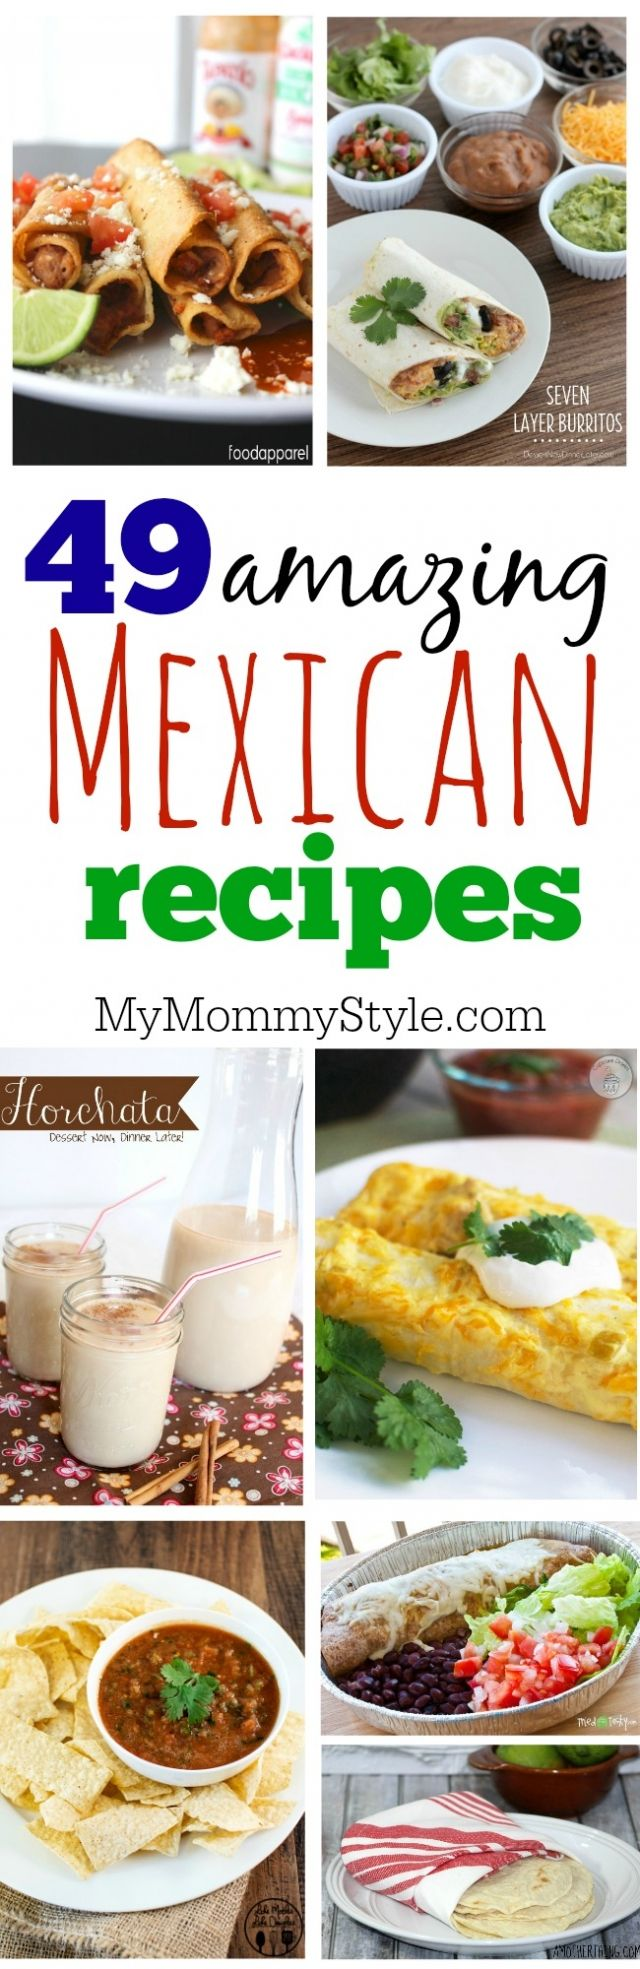 Photo of 49 Mexican Recipes